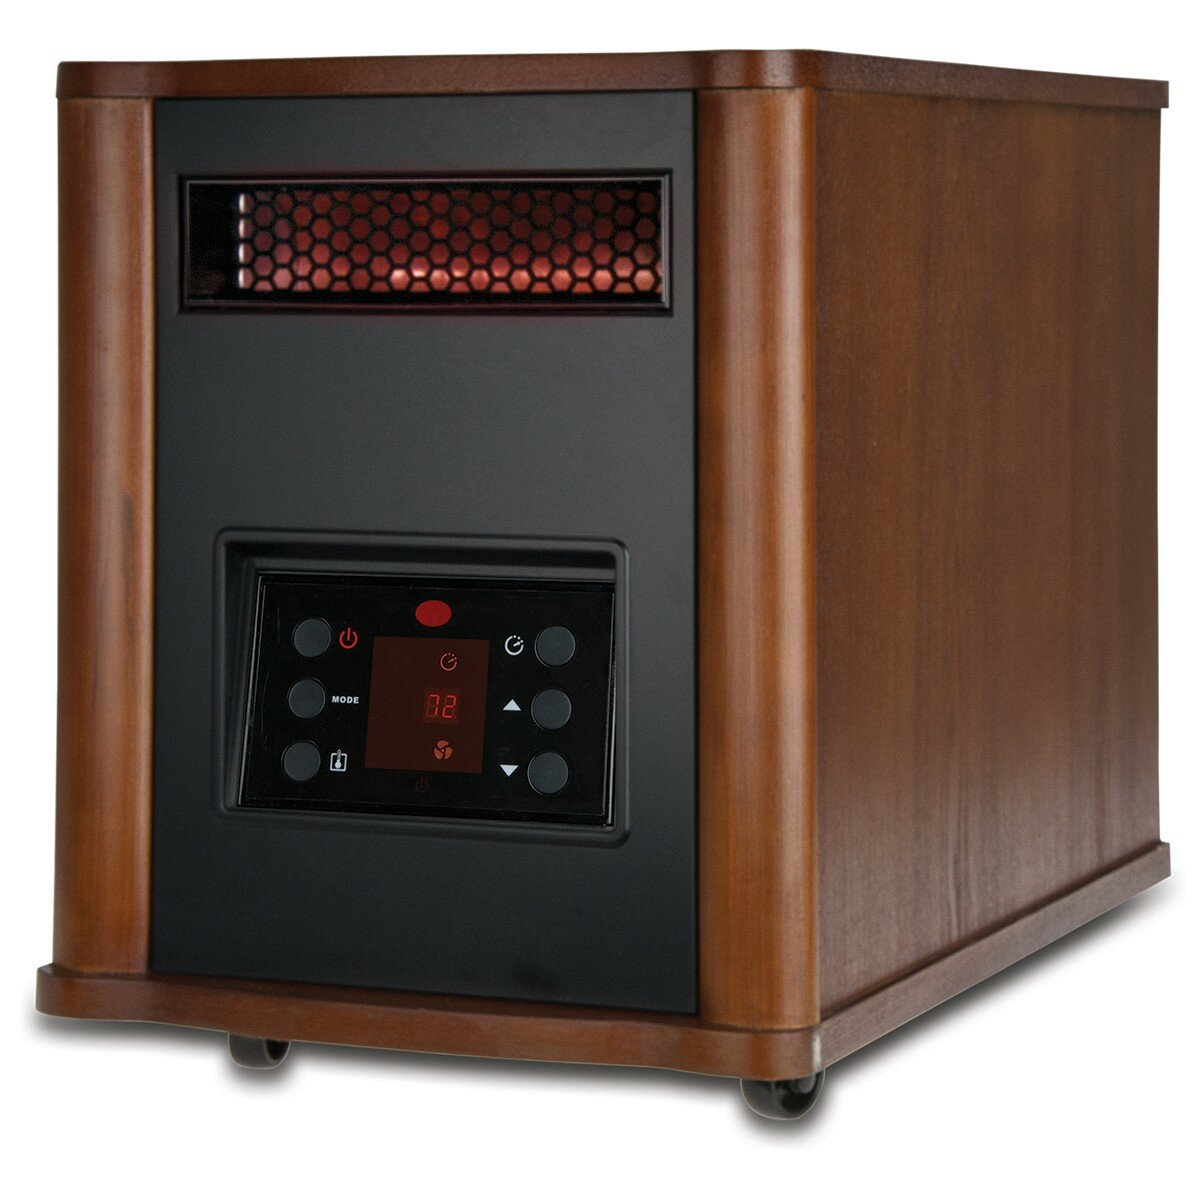 Holmes Products Portable Electric Infrared Cabinet Heater